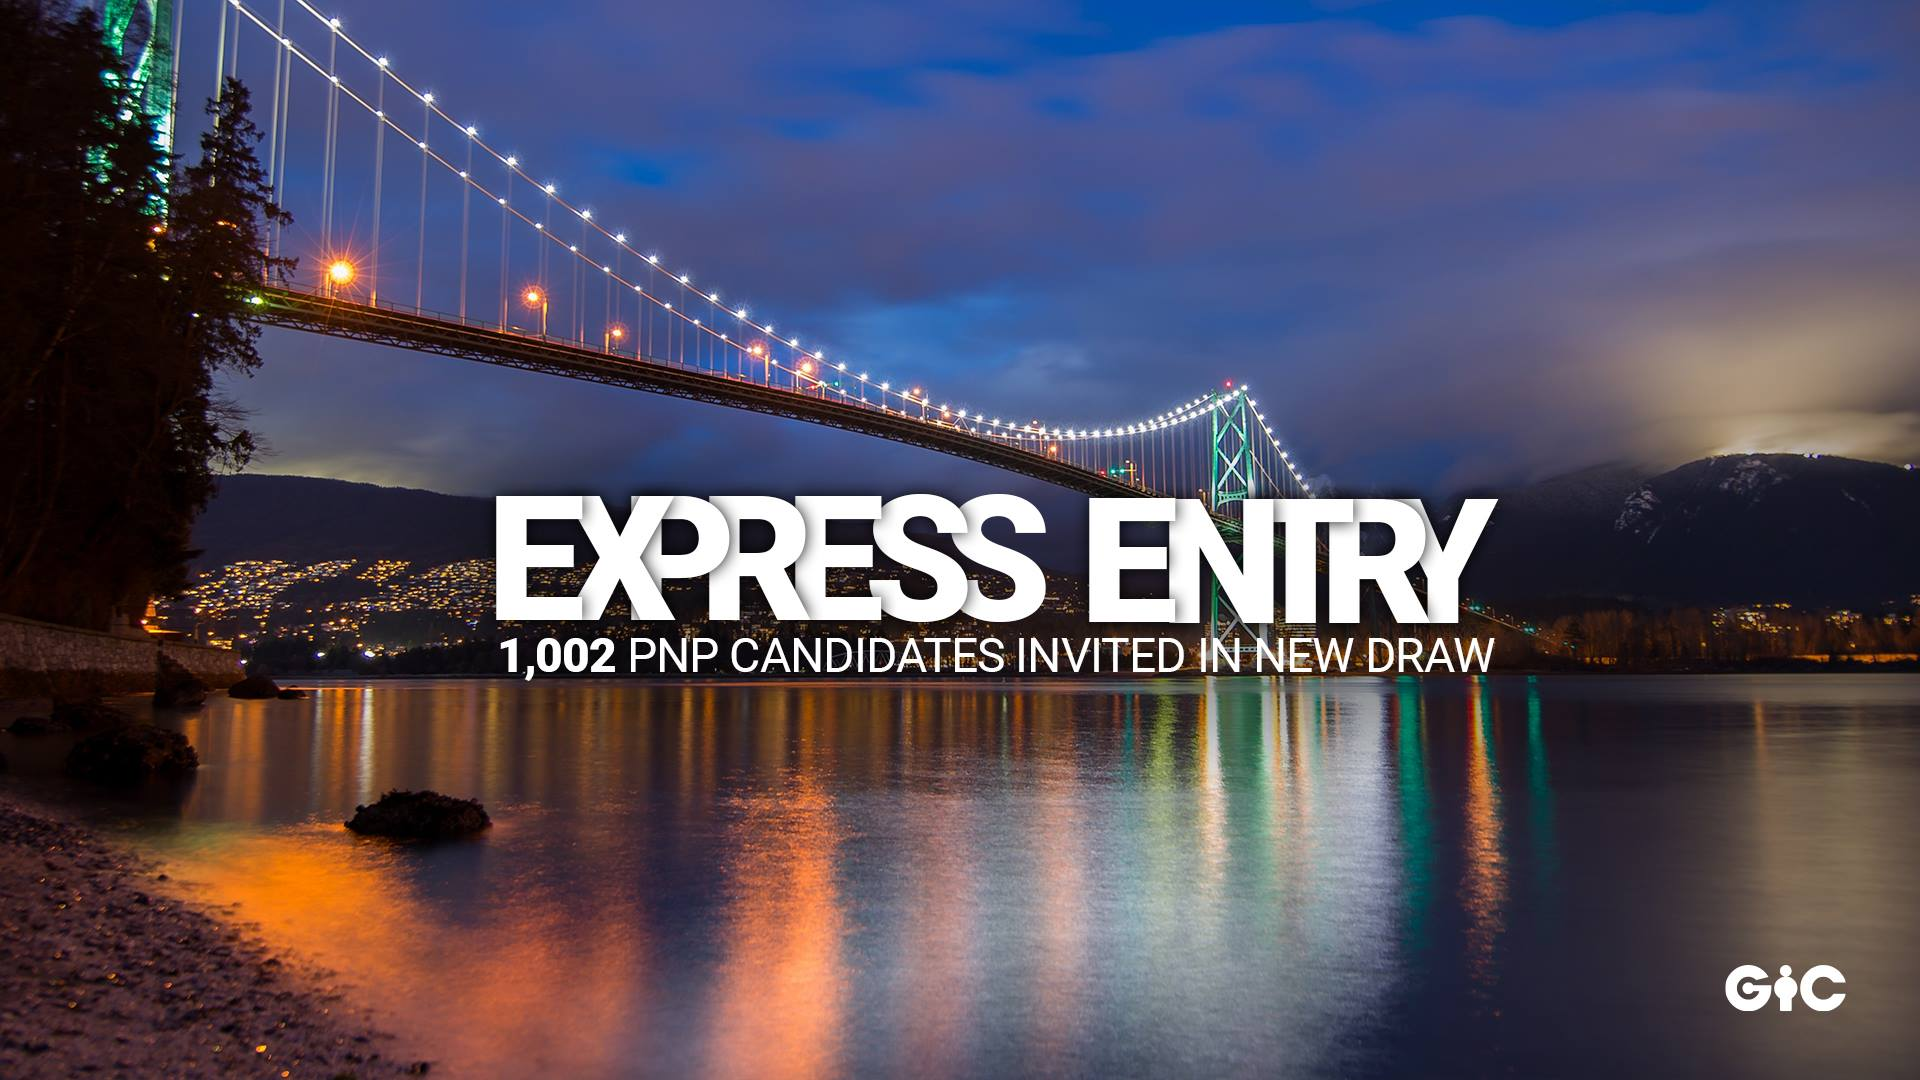 Express Entry 1,002 PNP candidates invited in new draw